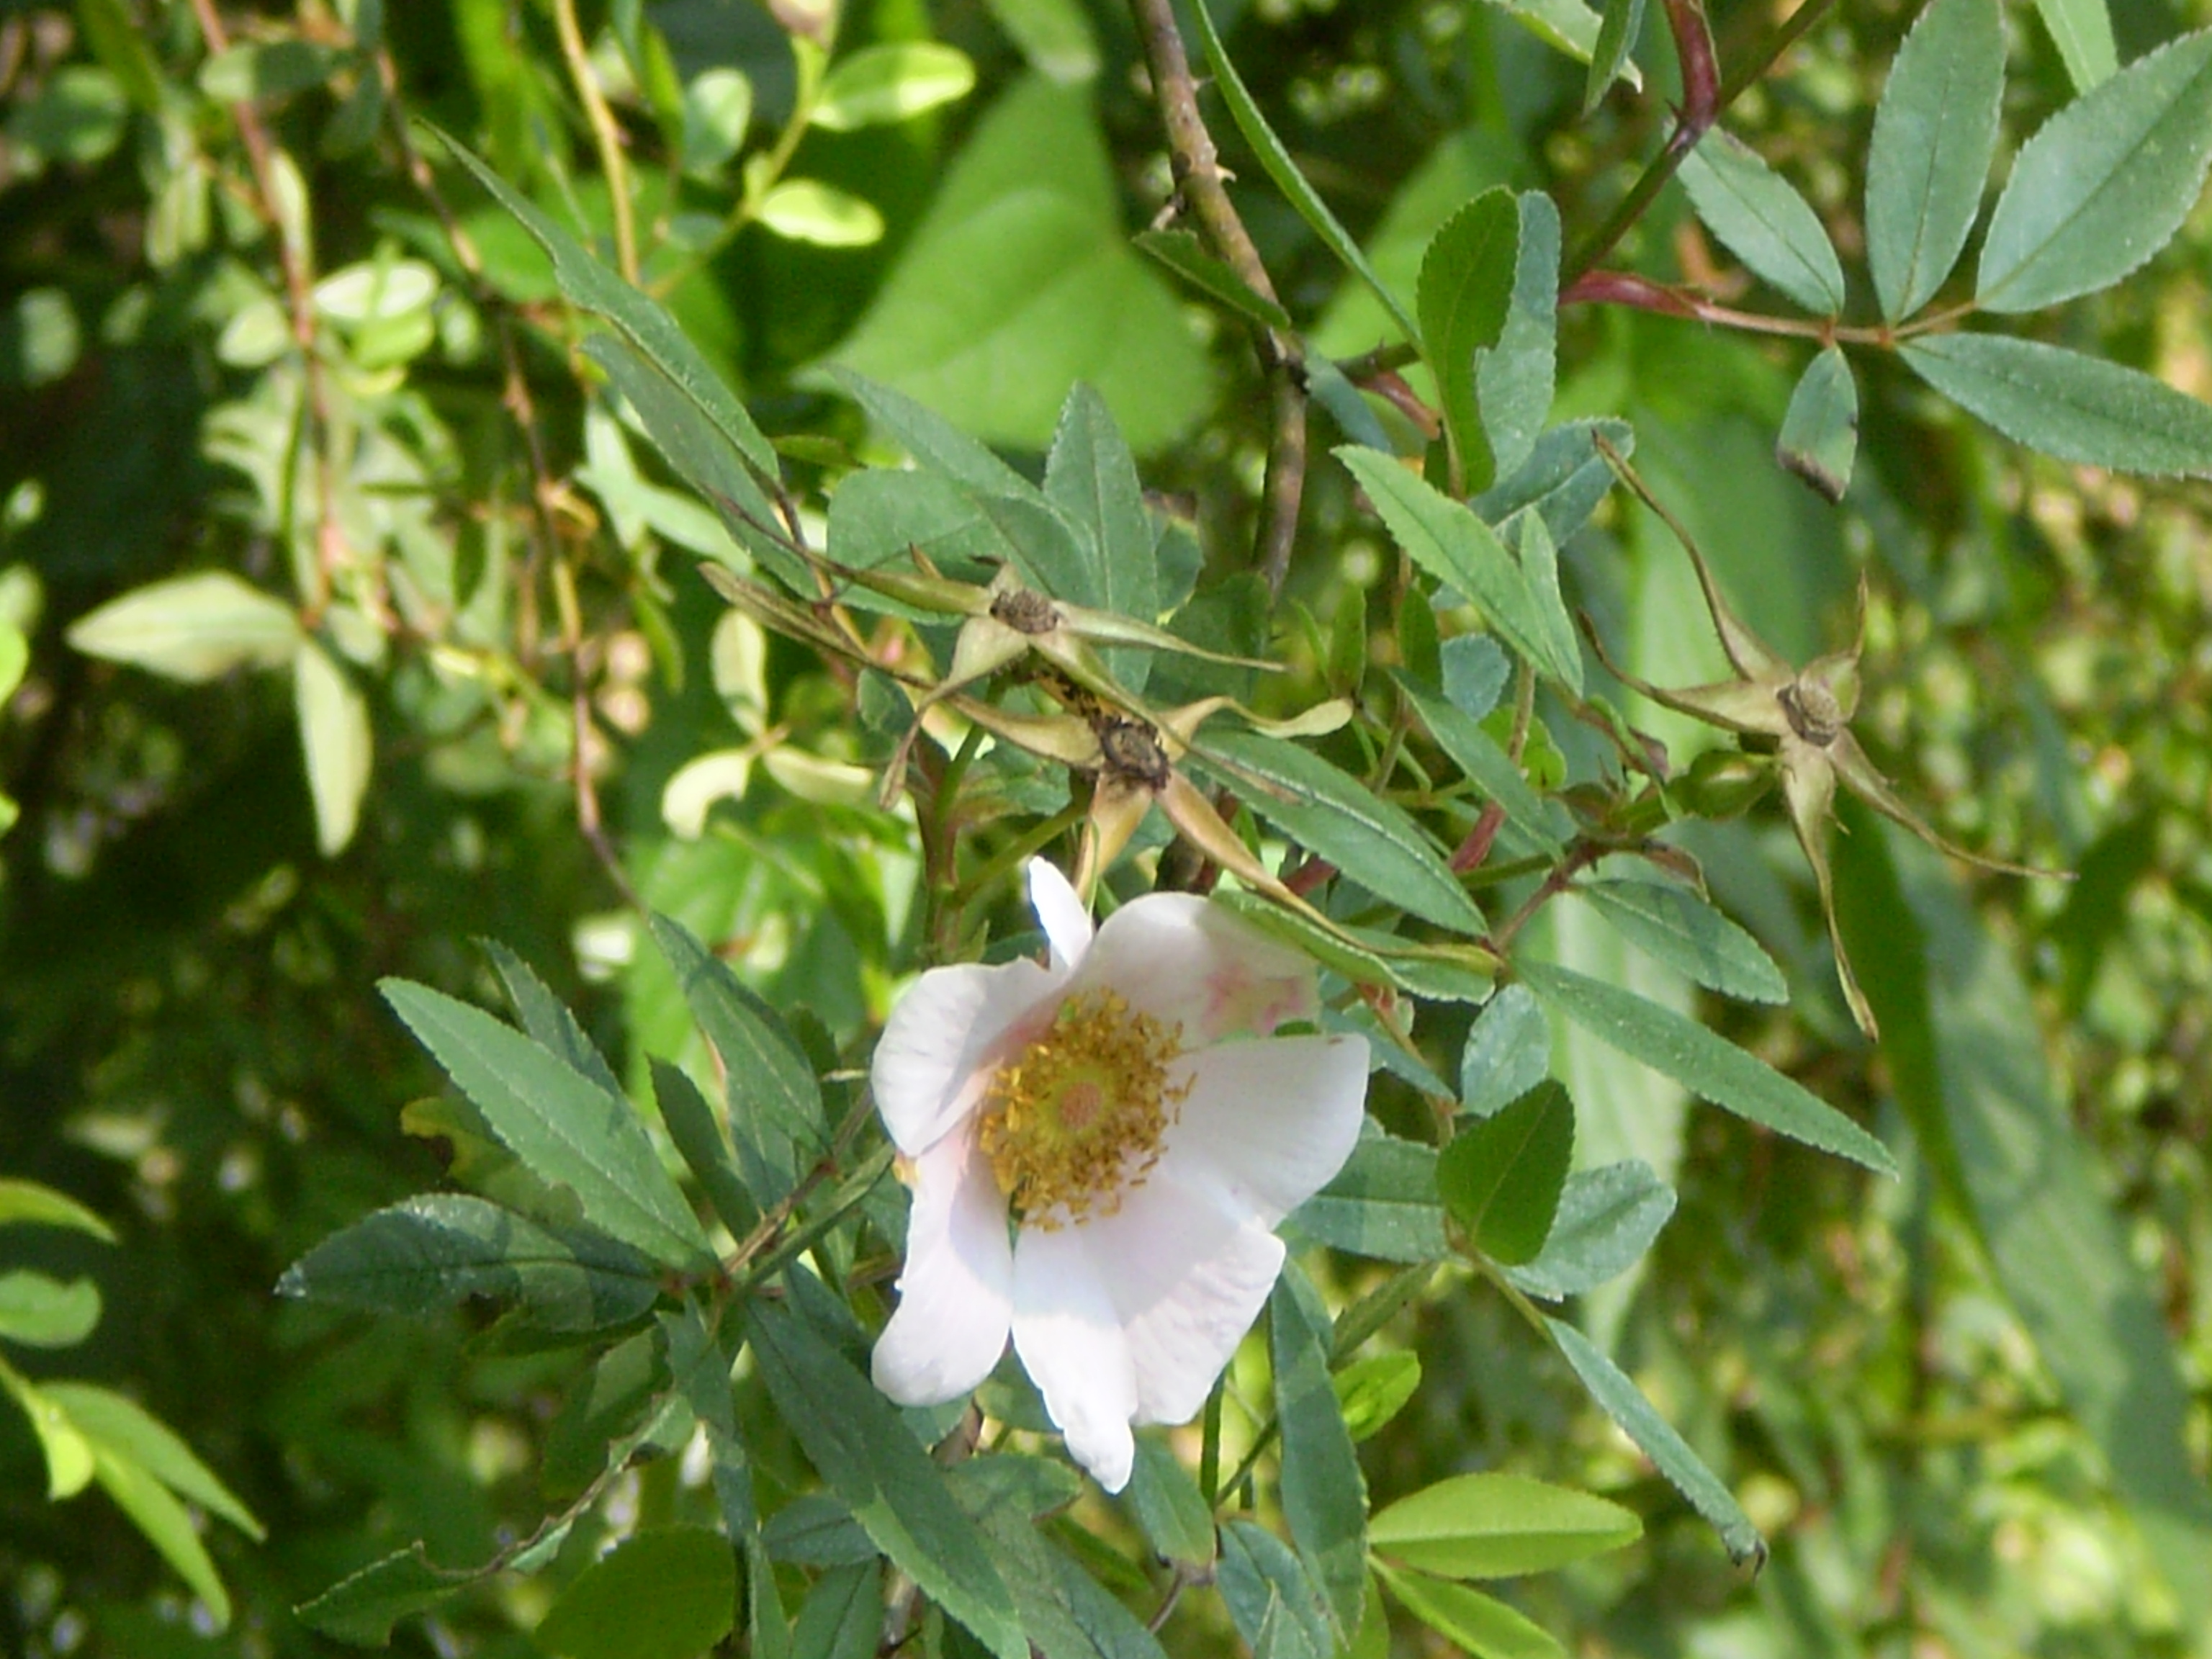 Image Related To Rosa palustris (Swamp Rose)